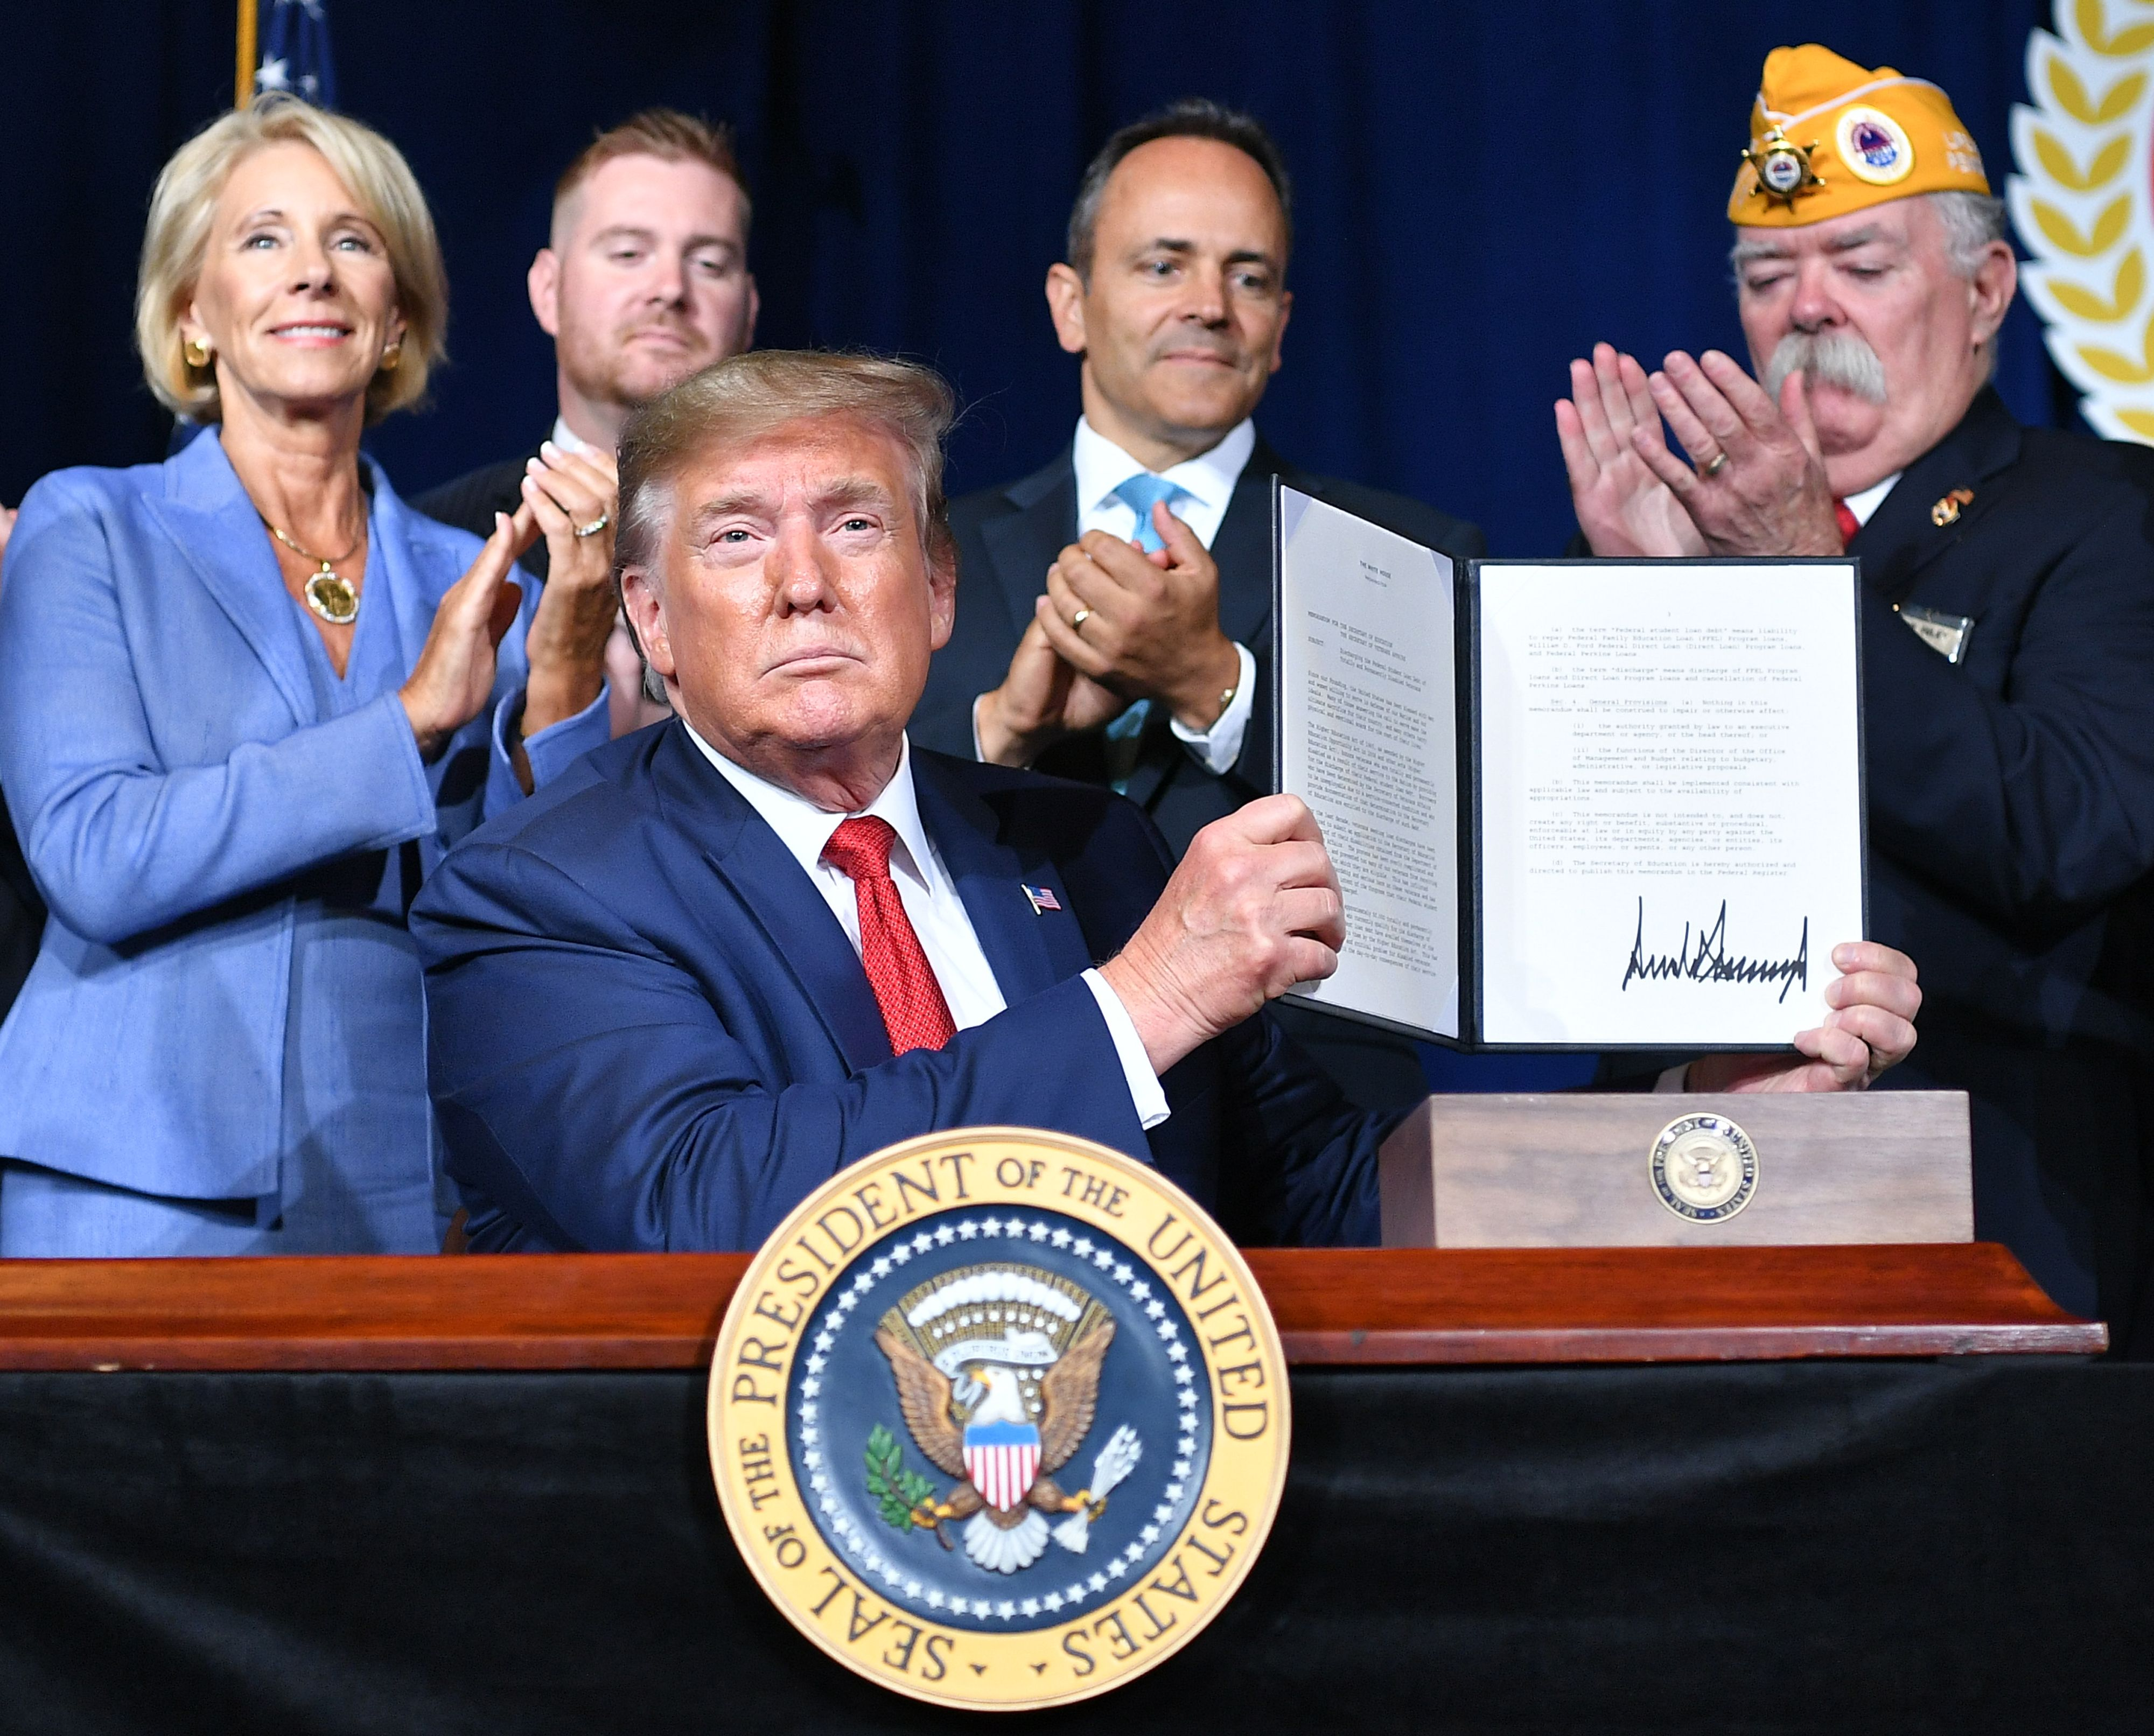 US President Donald Trump sign a Presidential Memorandum on Discharging the Federal Student Loan Debt of Totally and Permanently Disabled Veterans, at the American Veterans (AMVETS) 75th National Convention in Louisville, Kentucky, on August 21, 2019. - With Trump are US Secretary Betsy DeVos (L), Kectucky Governor Matt Bevin (2nd R) and AMVETS National Commander Rege Riley (R). (Photo by Mandel NGAN / AFP) / ALTERNATIVE CROP (Photo credit should read MANDEL NGAN/AFP via Getty Images)